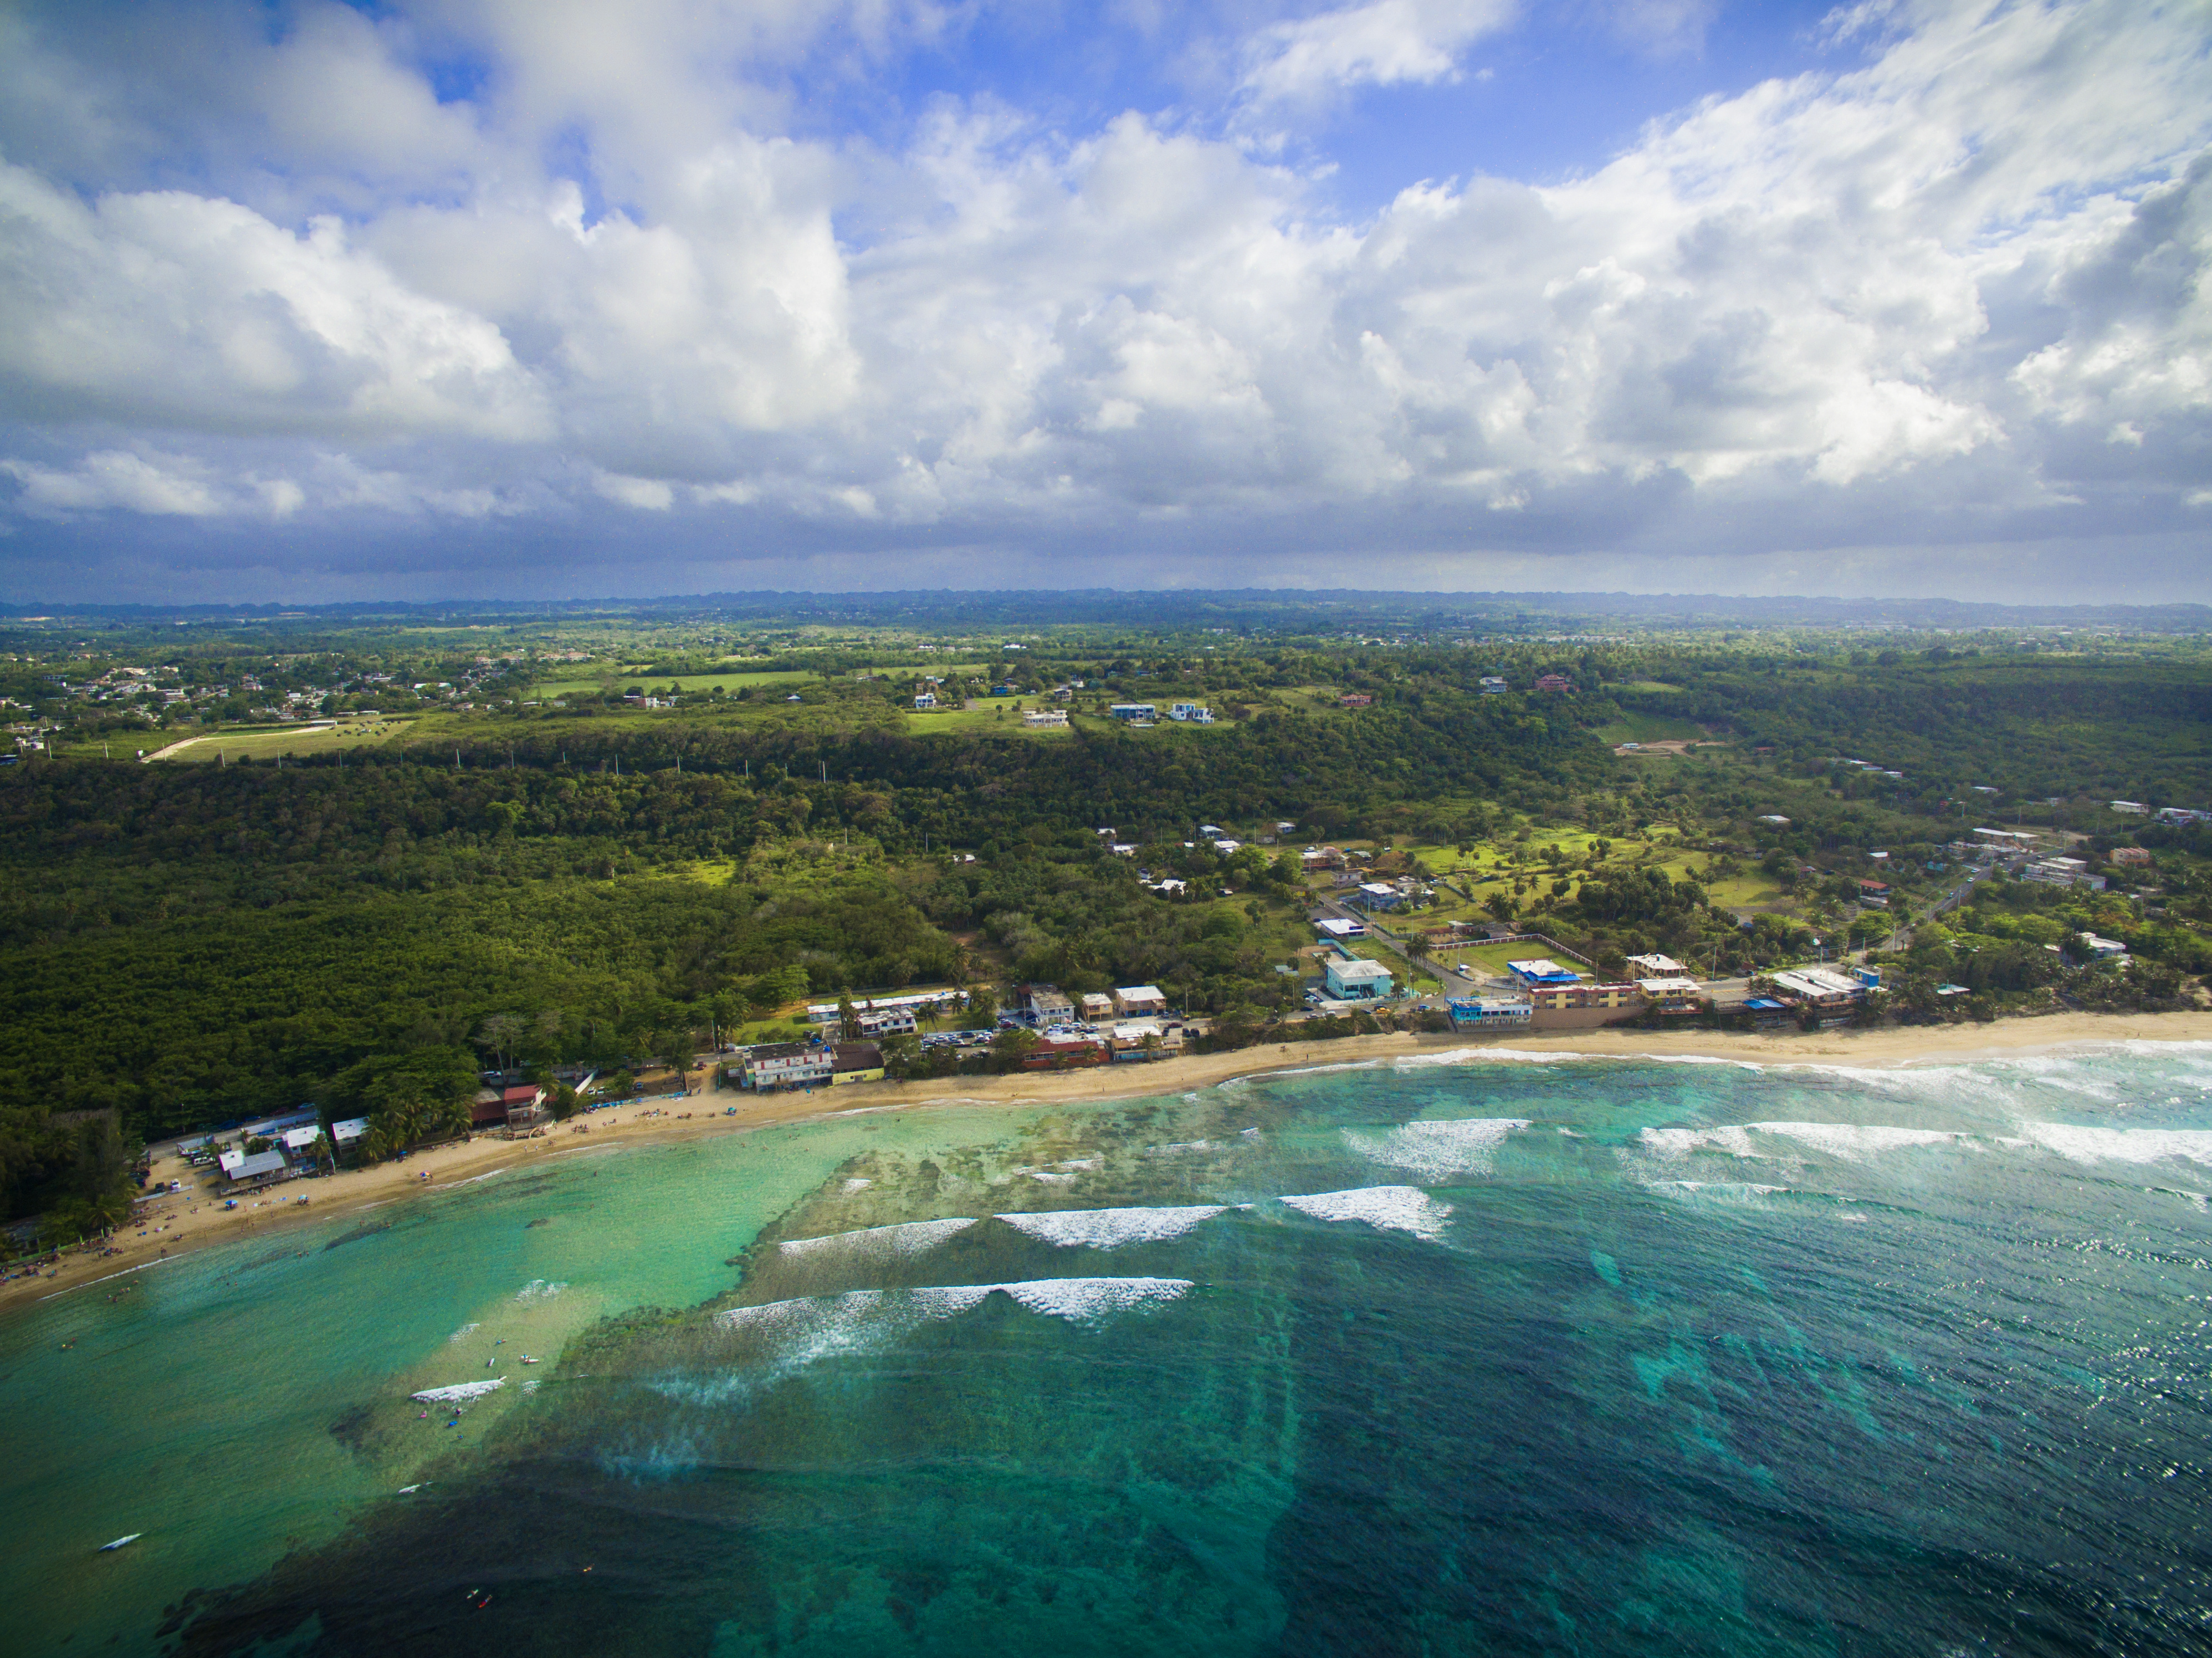 Aerial view of beach in Isabela Puerto Rico.